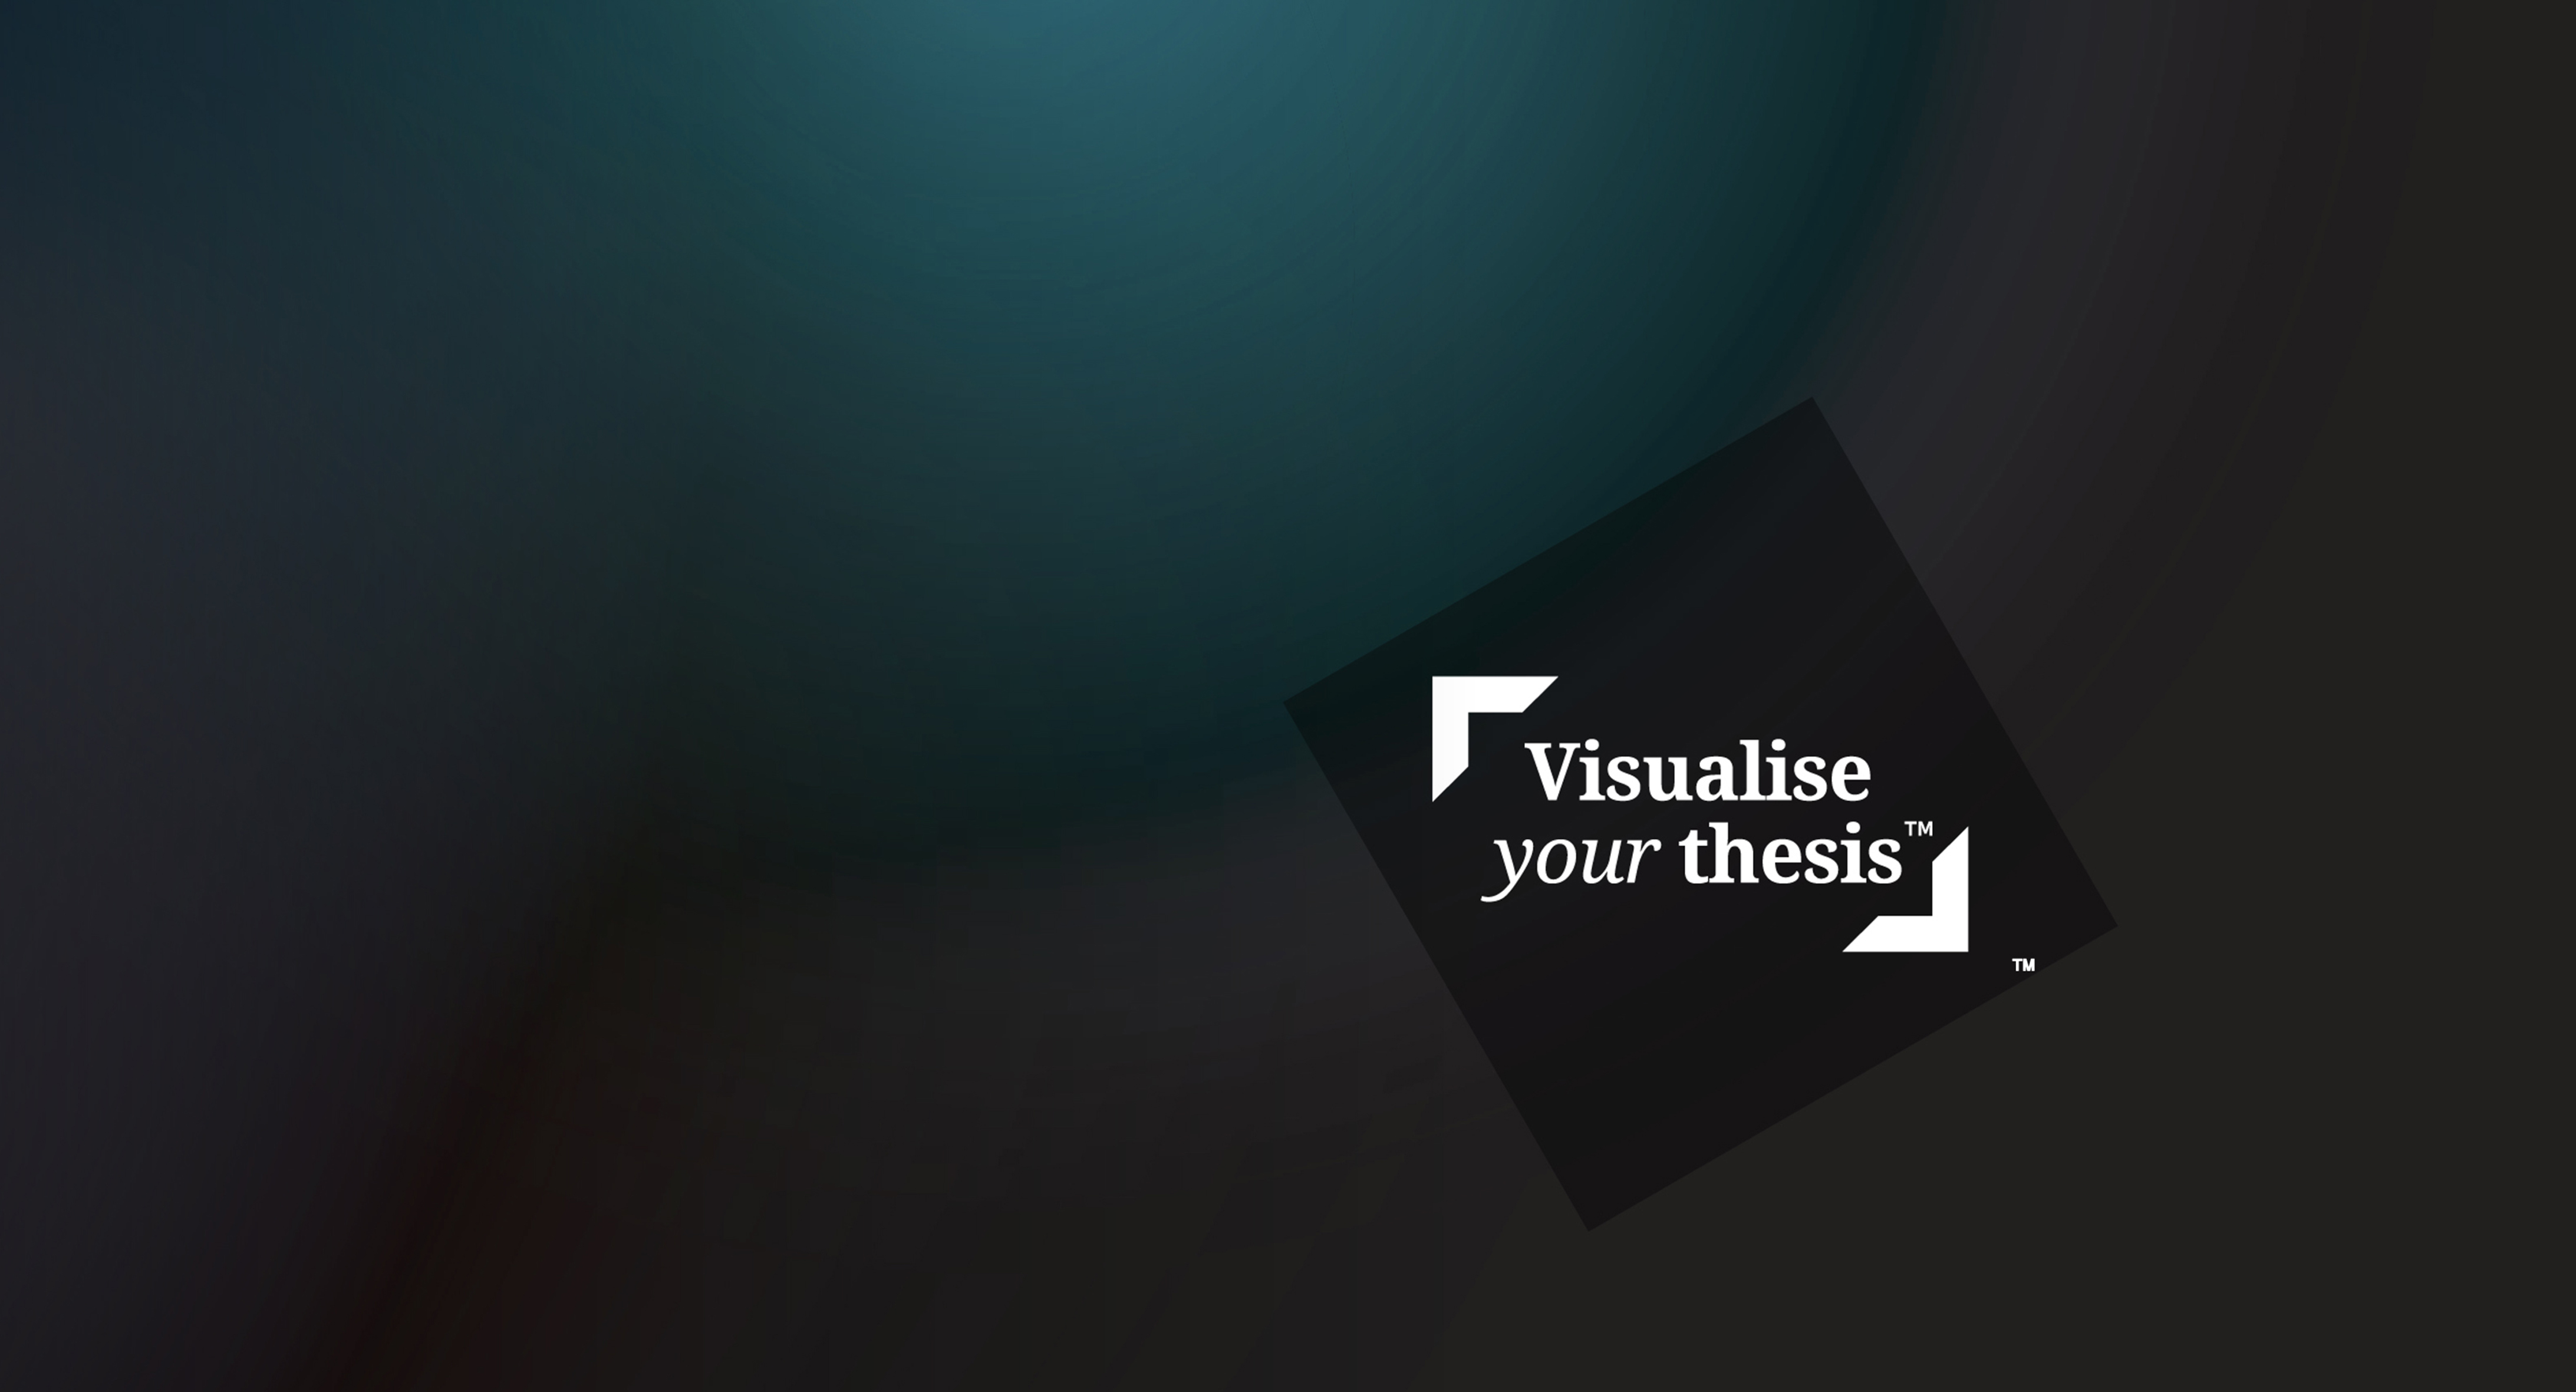 Visualise Your Thesis background image